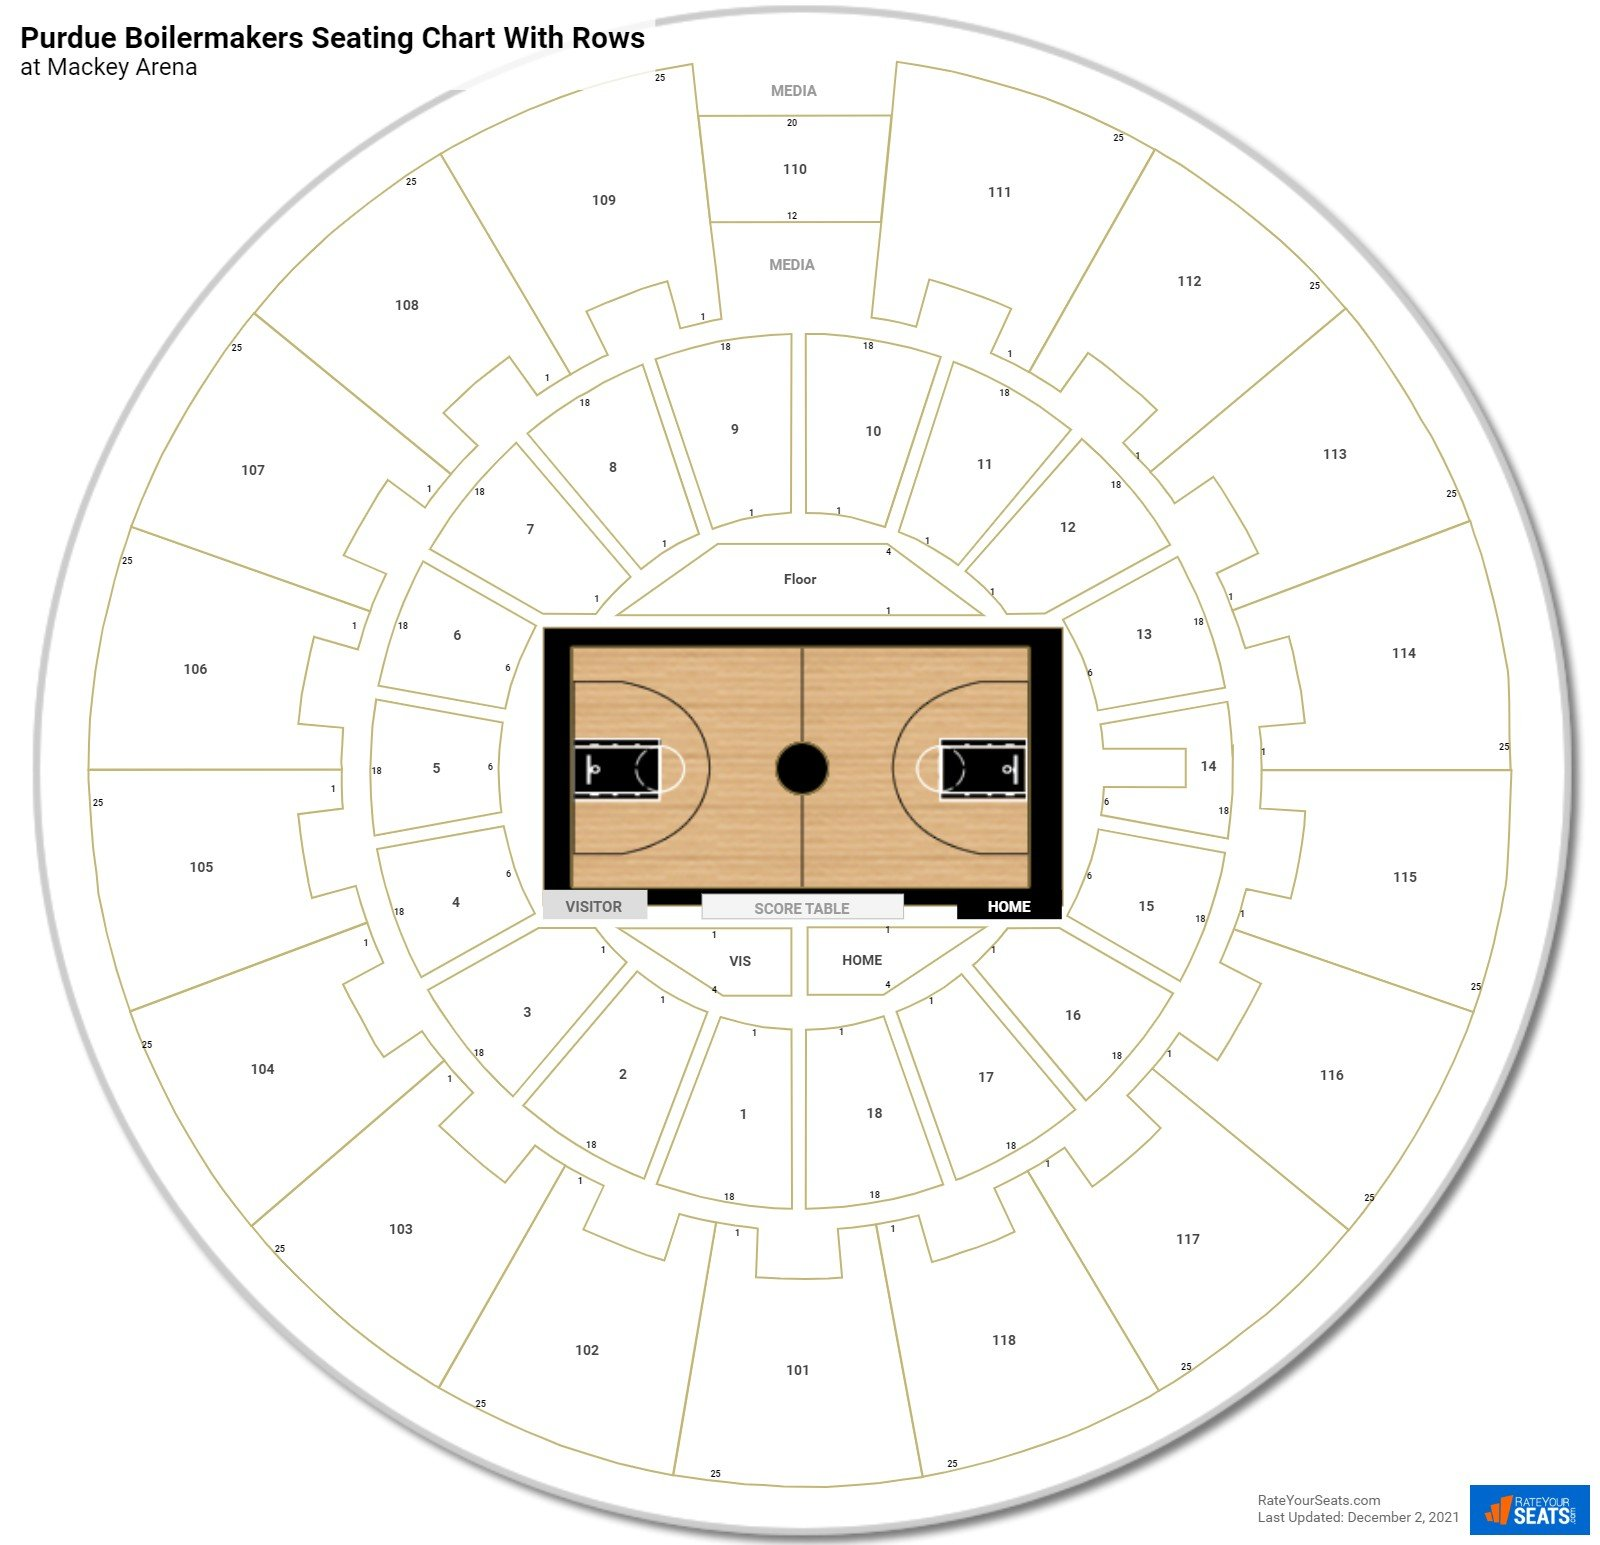 Mackey Arena seating chart with rows